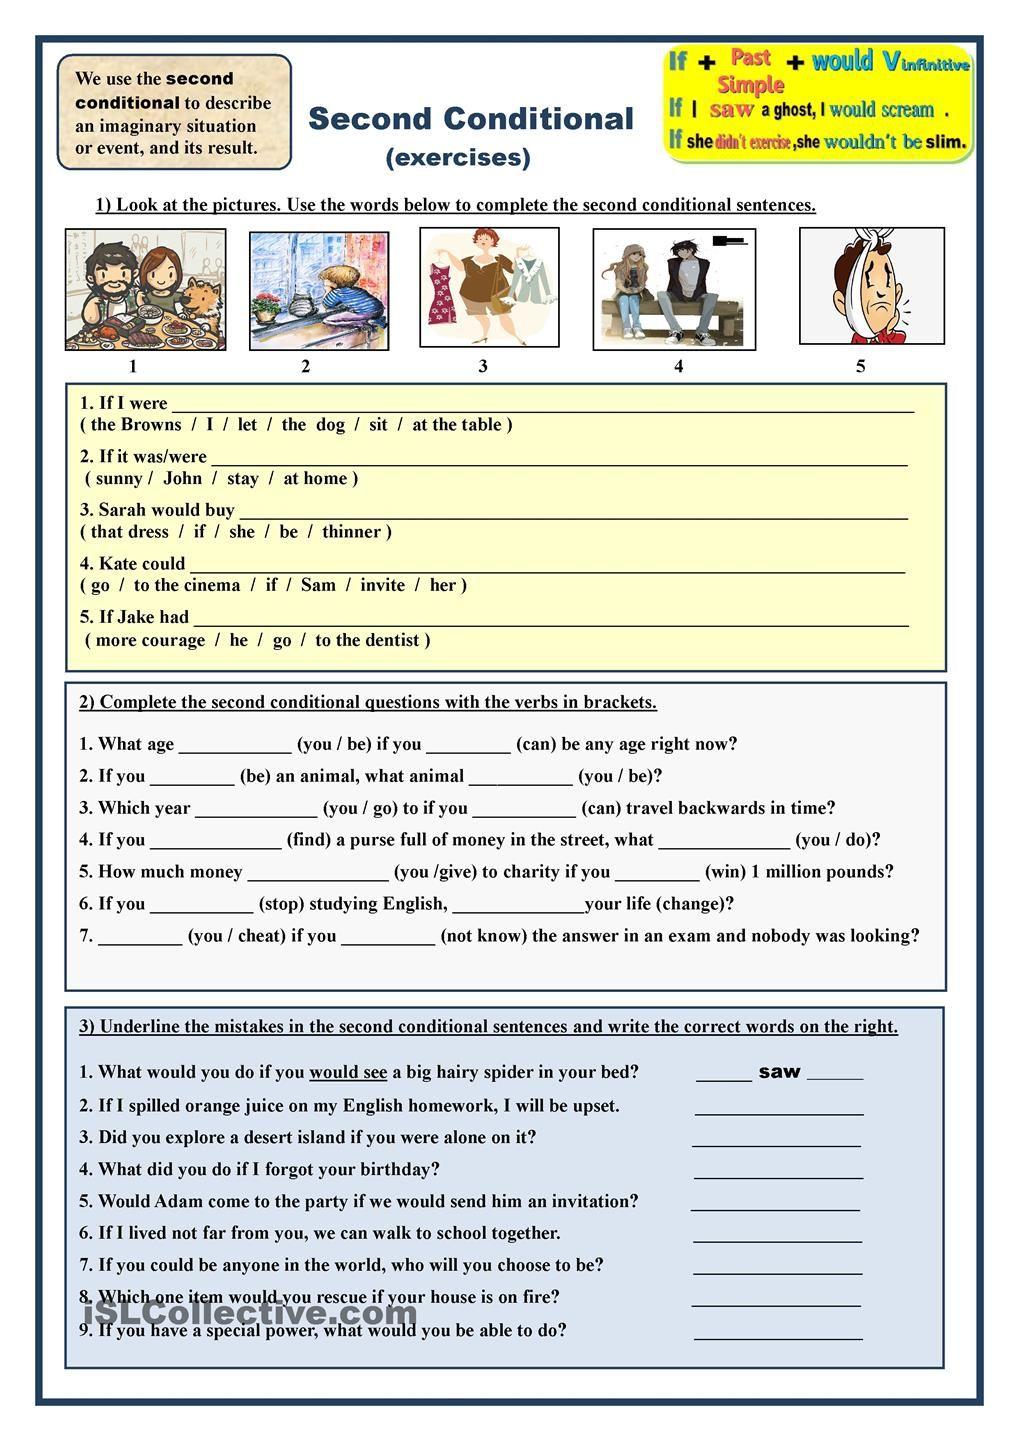 Second Conditional (exercises) | μάνα | Pinterest | Englisch ...